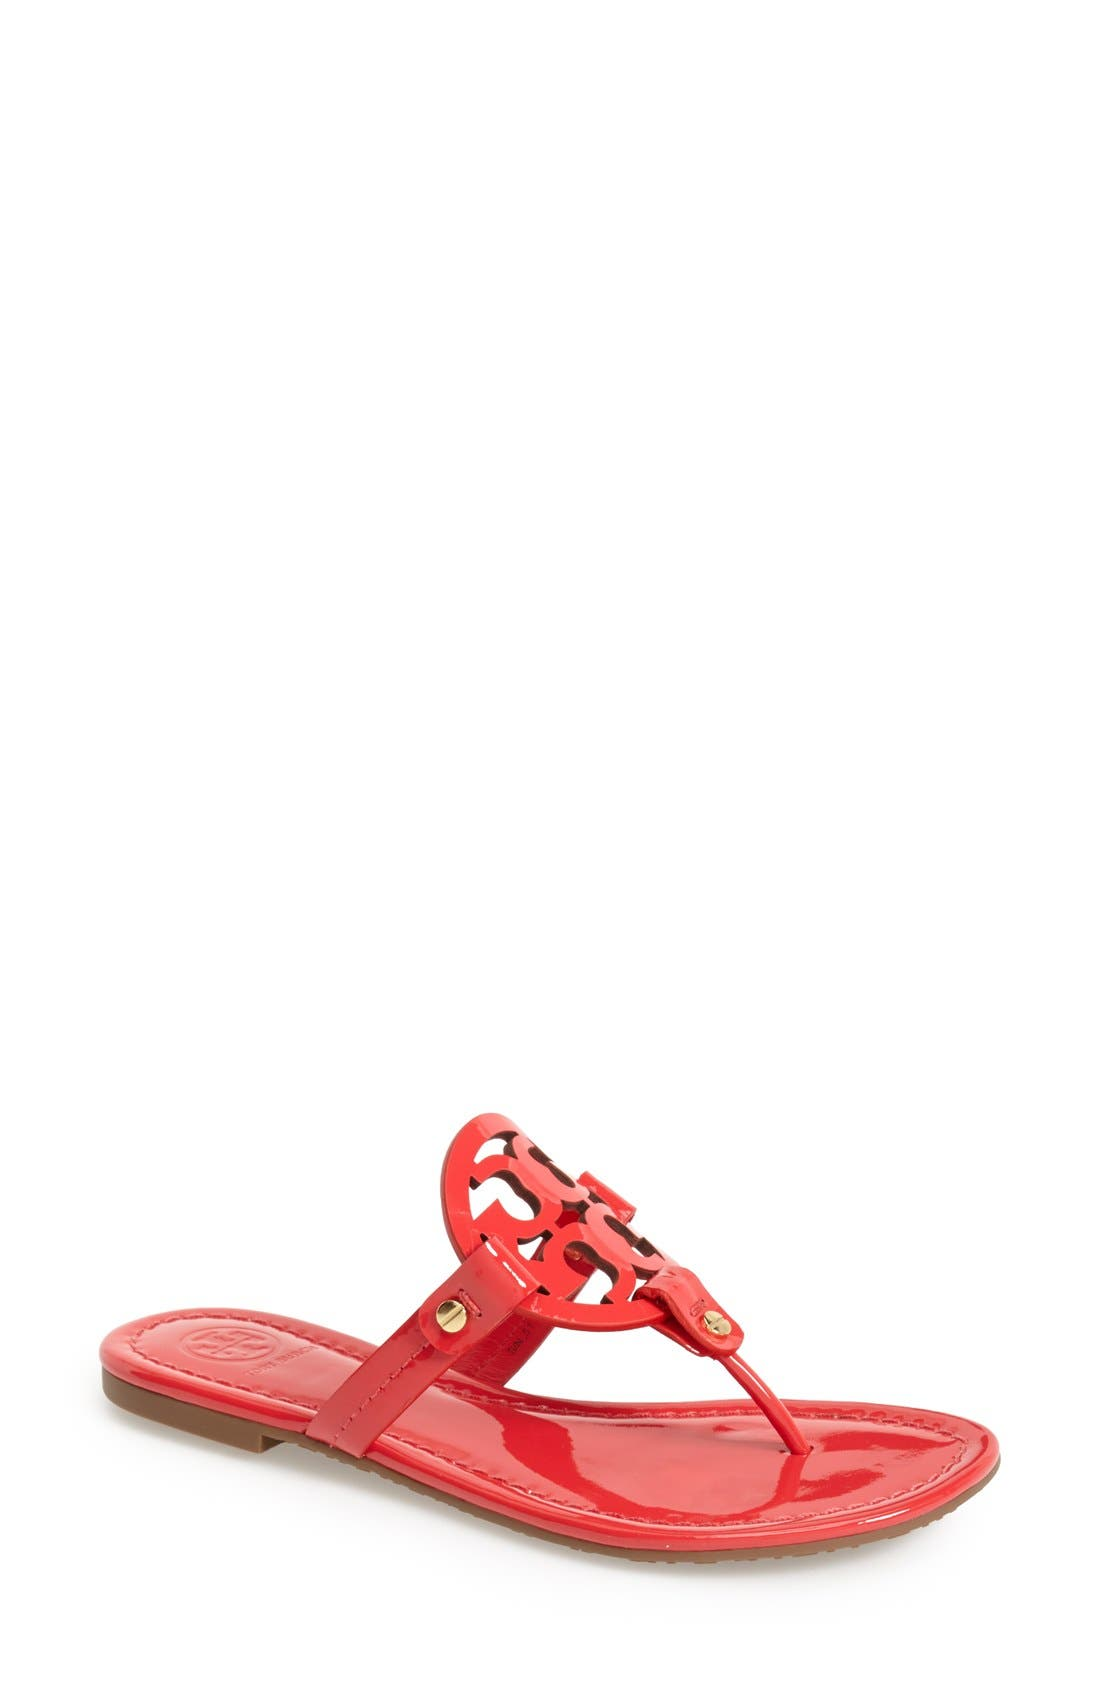 Alternate Image 1 Selected - Tory Burch 'Miller' Sandal (Women) (Nordstrom Exclusive)